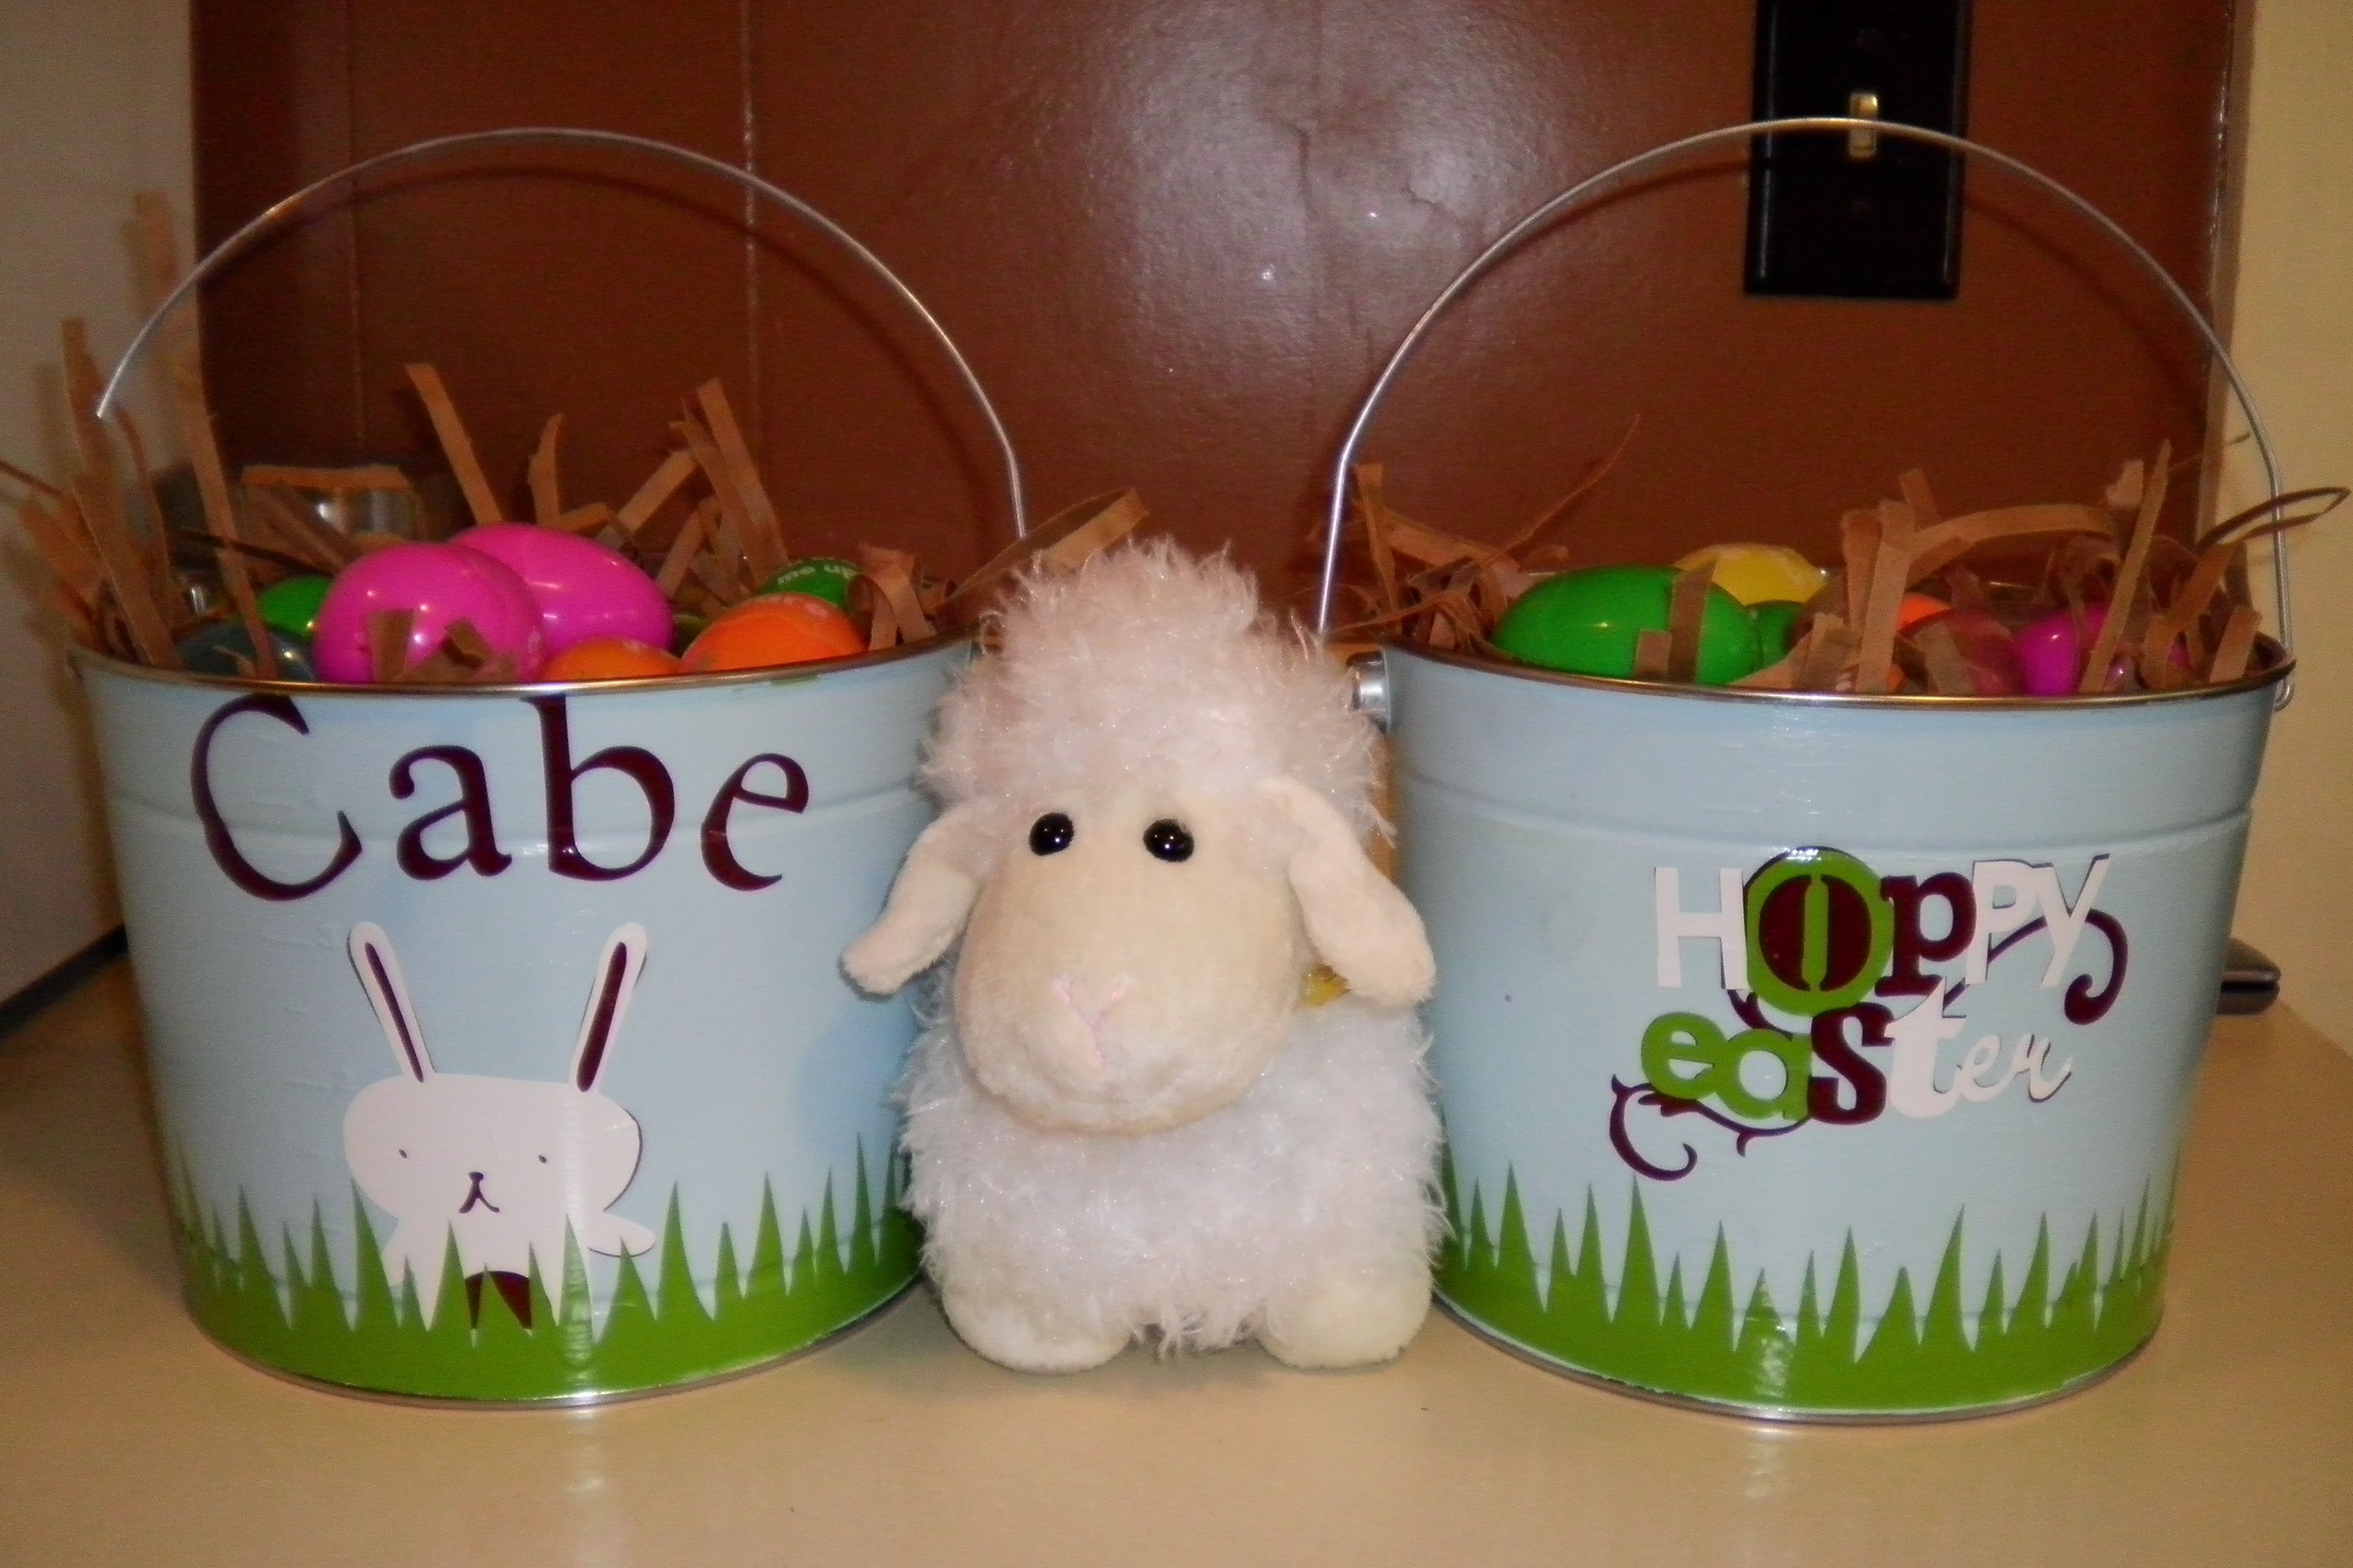 Easter buckets I made for my boys for Easter out of 5 qt. galvanized buckets. (My sis-n-law made the rabbit and Easter designs for me.)